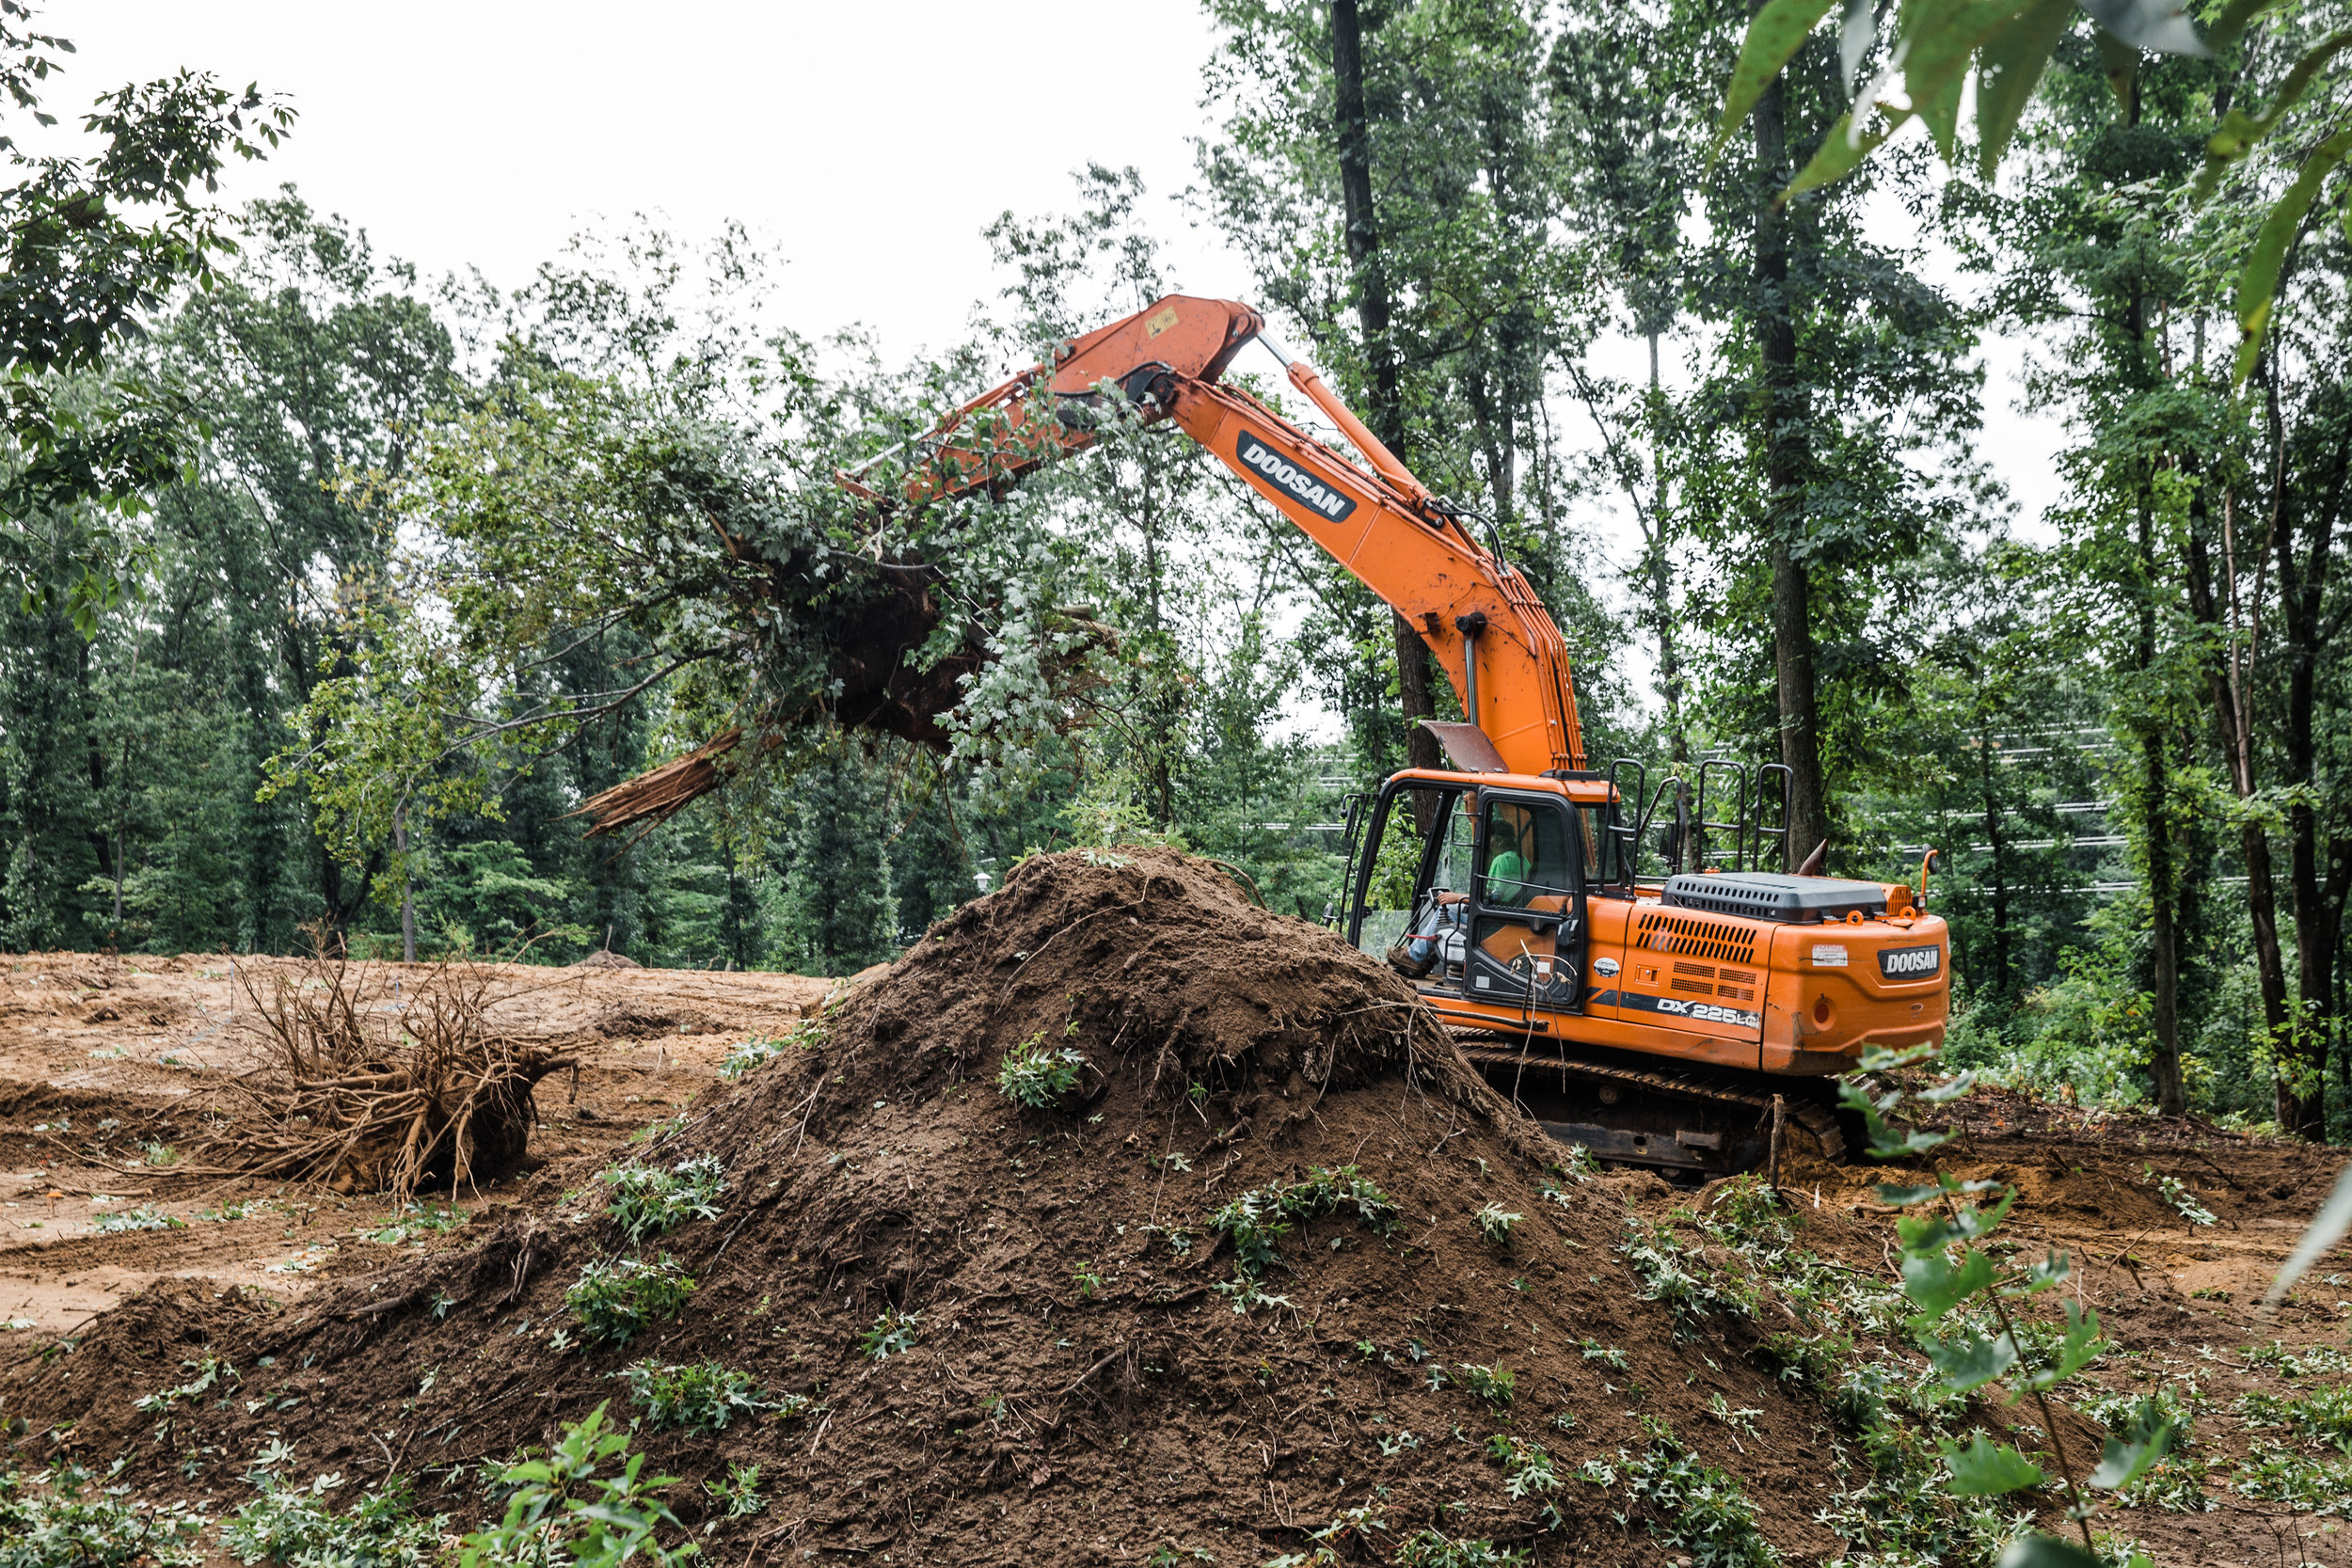 Importance of excavating